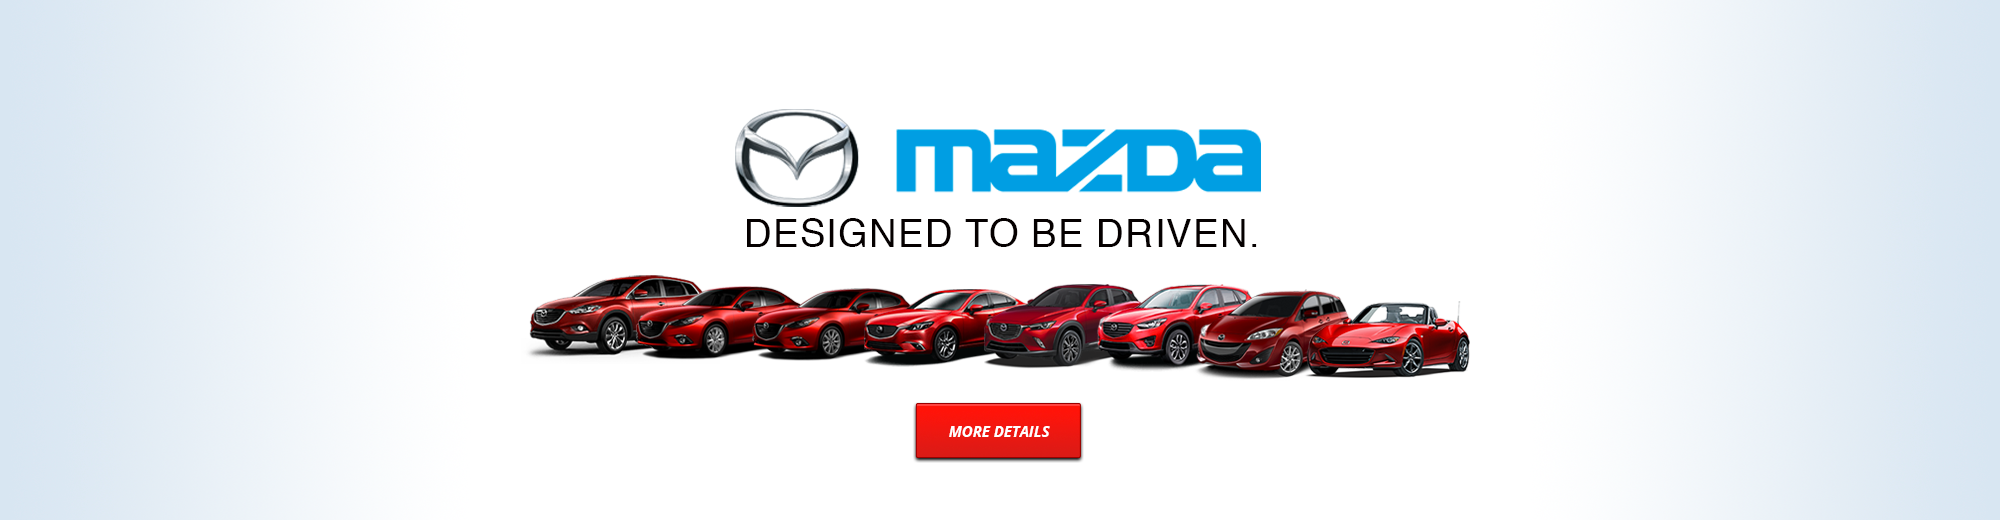 Mazda   Designed to be driven